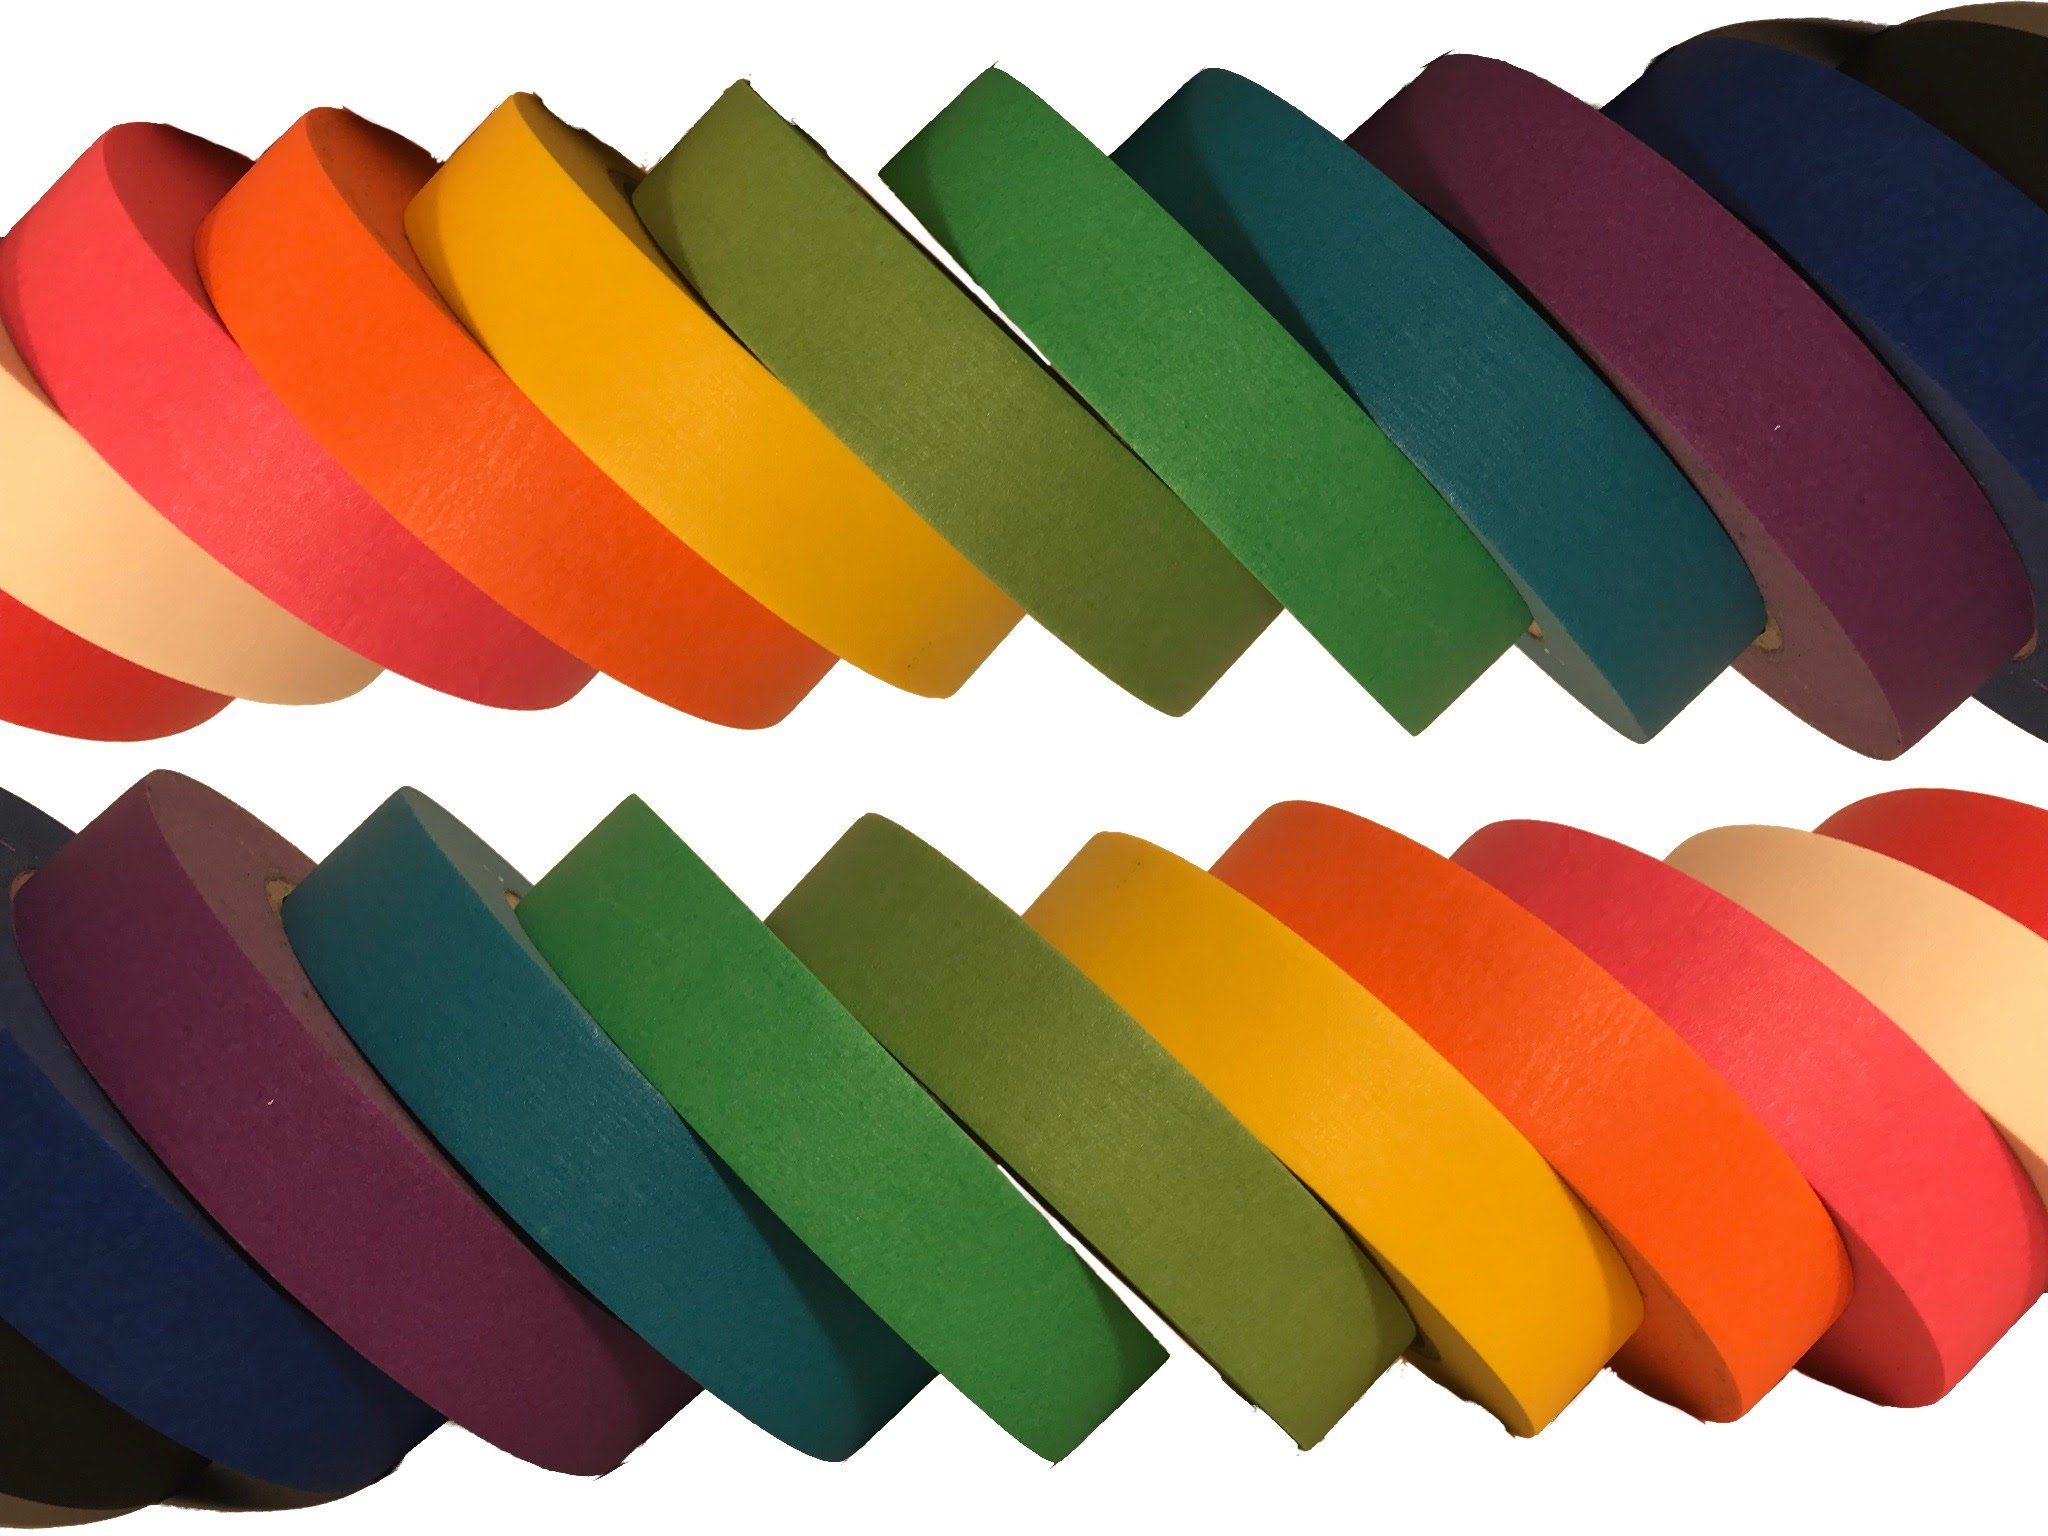 Vibrant Multi Colored Masking Tape 10 Rolls Plus one Bonus Roll by Lightningy Products